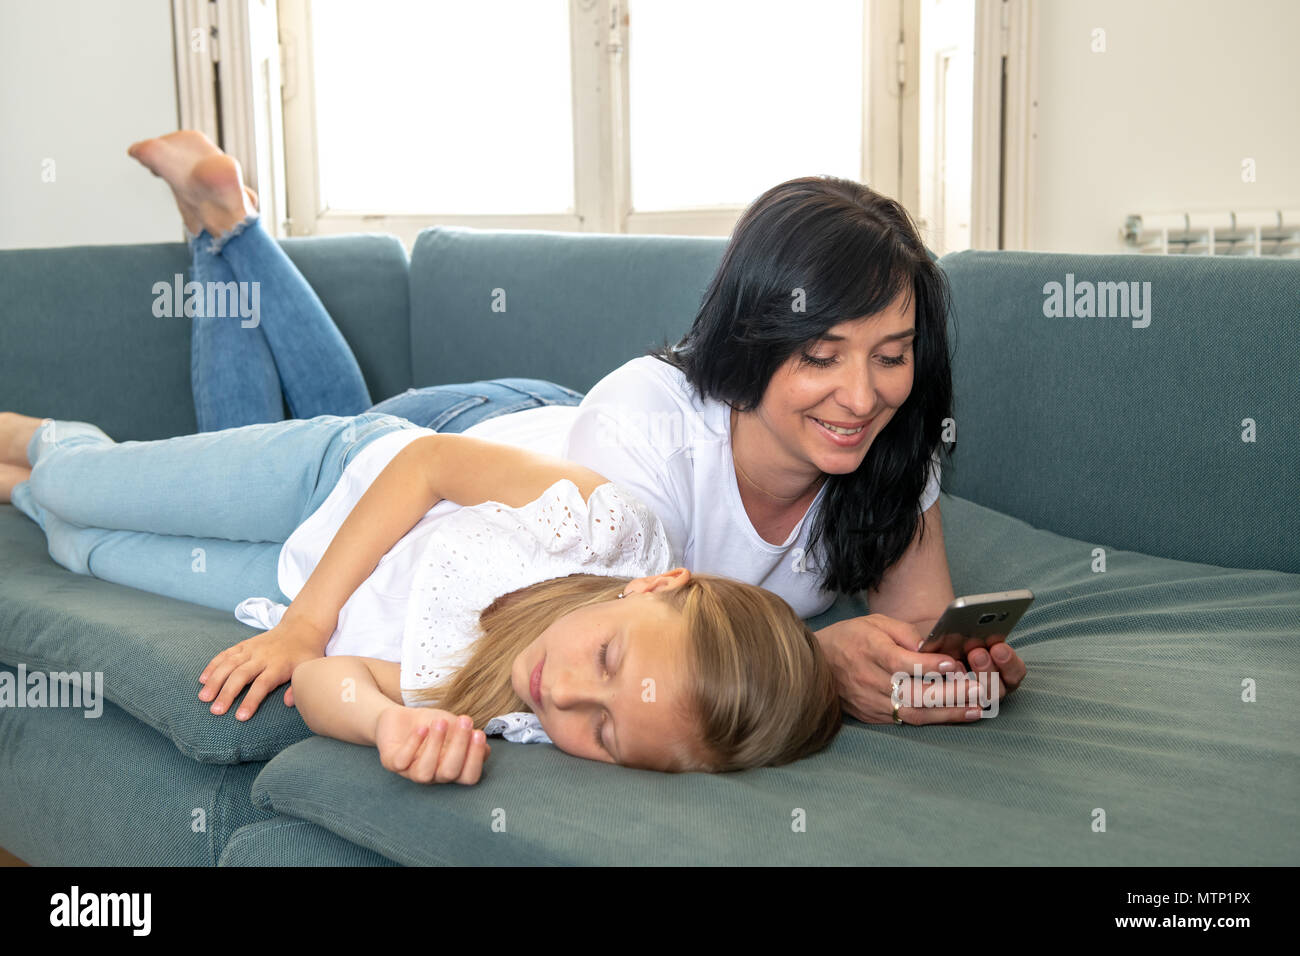 Digital technology addicted mum using her smart phone ignoring her sad Little girl feeling abandoned and unhappy with her mum not paying attention to  - Stock Image